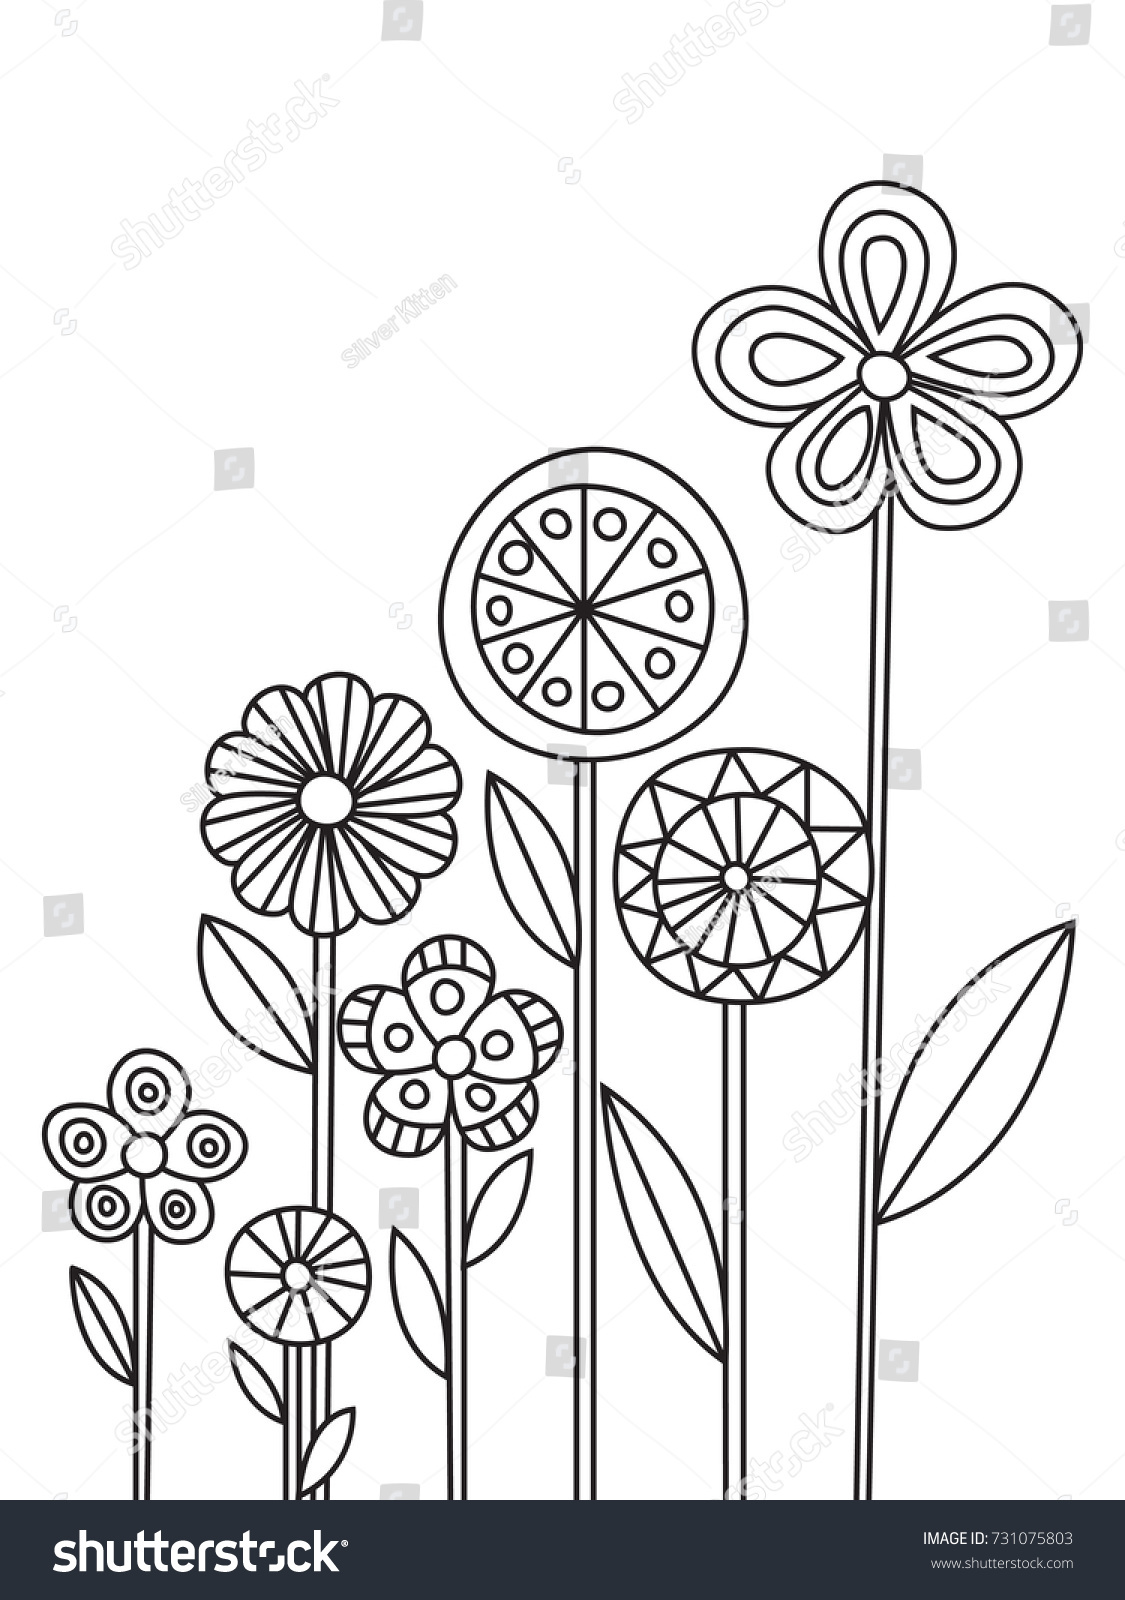 Outlined Doodle Antistress Coloring Page Flowers Stock Vector HD ...